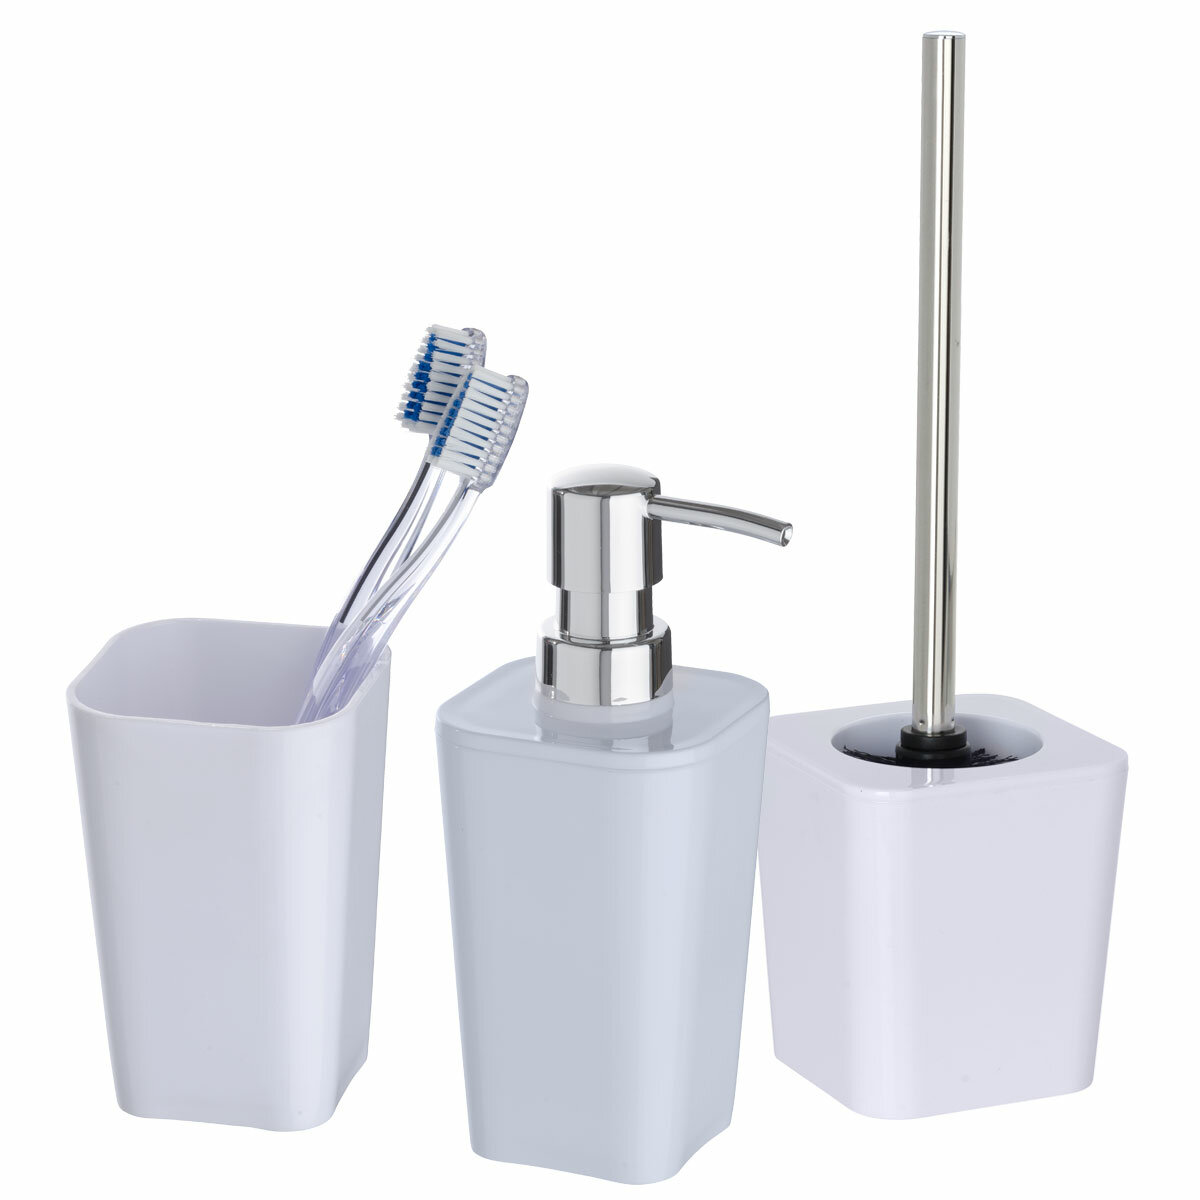 Wenko Candy 3 Piece Bathroom Accessory Set | Wayfair.co.uk